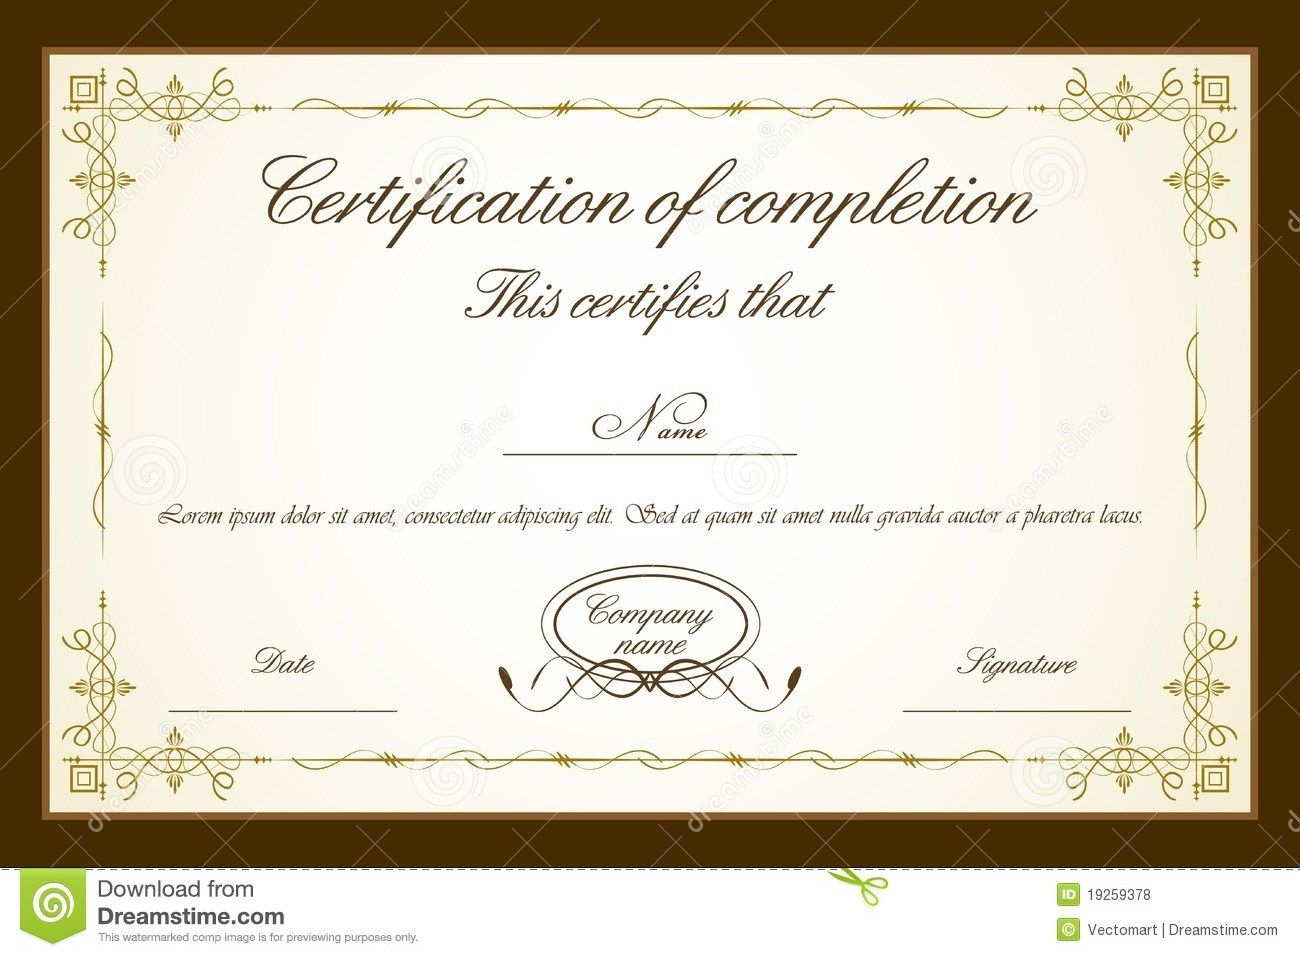 Certificate Of Appreciation Templates Free Download Appreciation Certificate Template Free Printable Microsoft Templates .